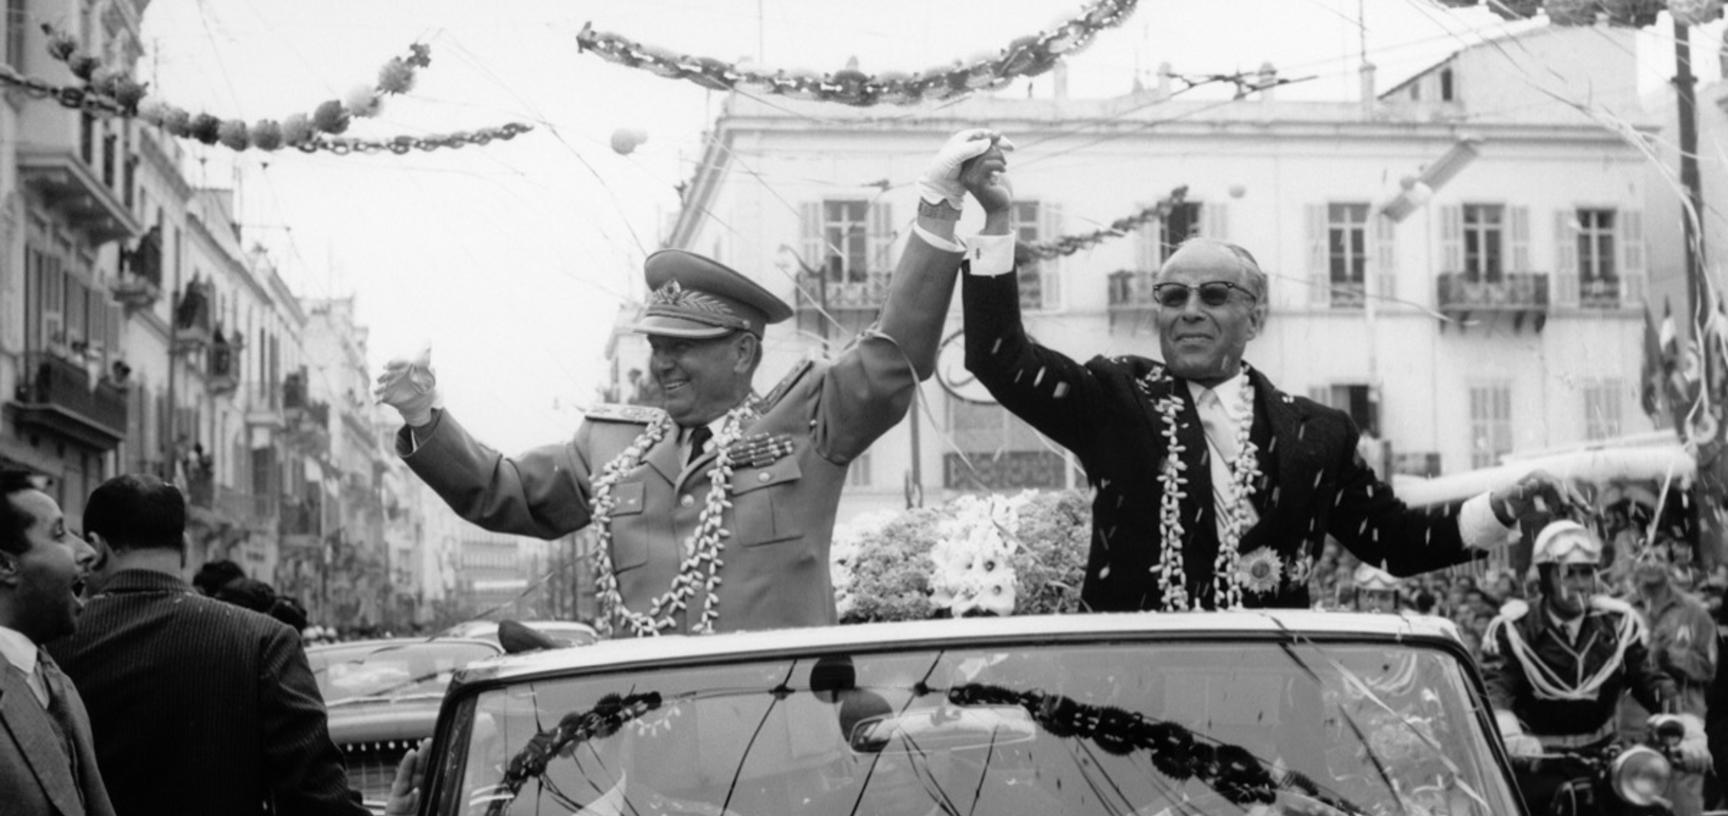 Tunisia, 1961. Presidents Tito and Bourguiba on the way from the harbour to the residence in Tunisia. (Copyright Museum of Yugoslavia, Belgrade)